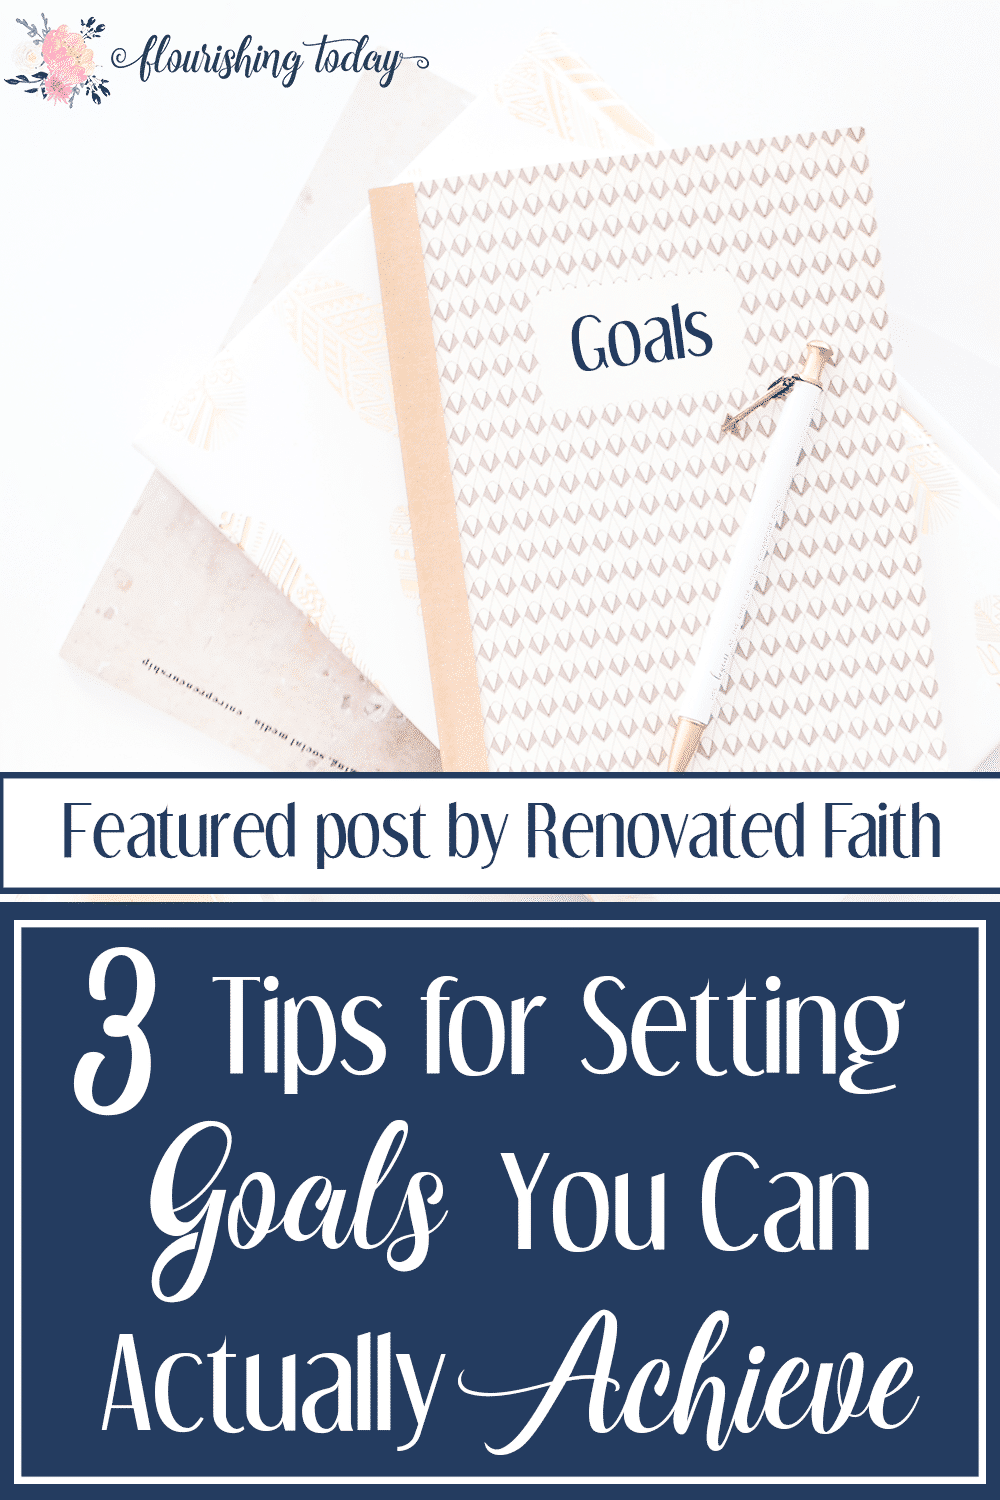 Do you have a hard time finding ways to achieve your goals? Here we'll discuss hinderances to goals and how to set goals you can achieve.